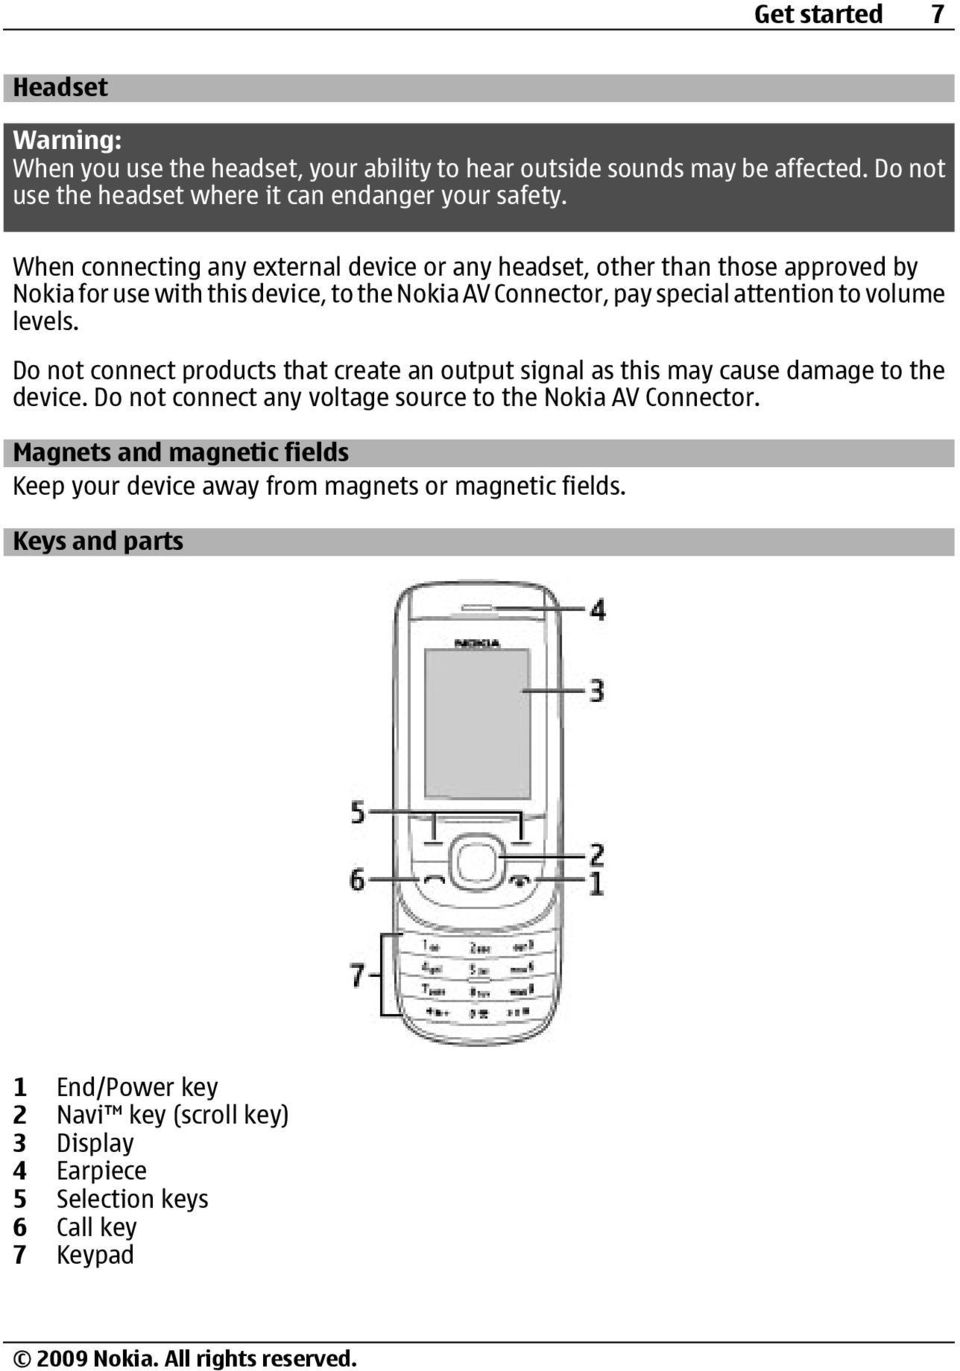 Do not connect products that create an output signal as this may cause damage to the device. Do not connect any voltage source to the Nokia AV Connector.